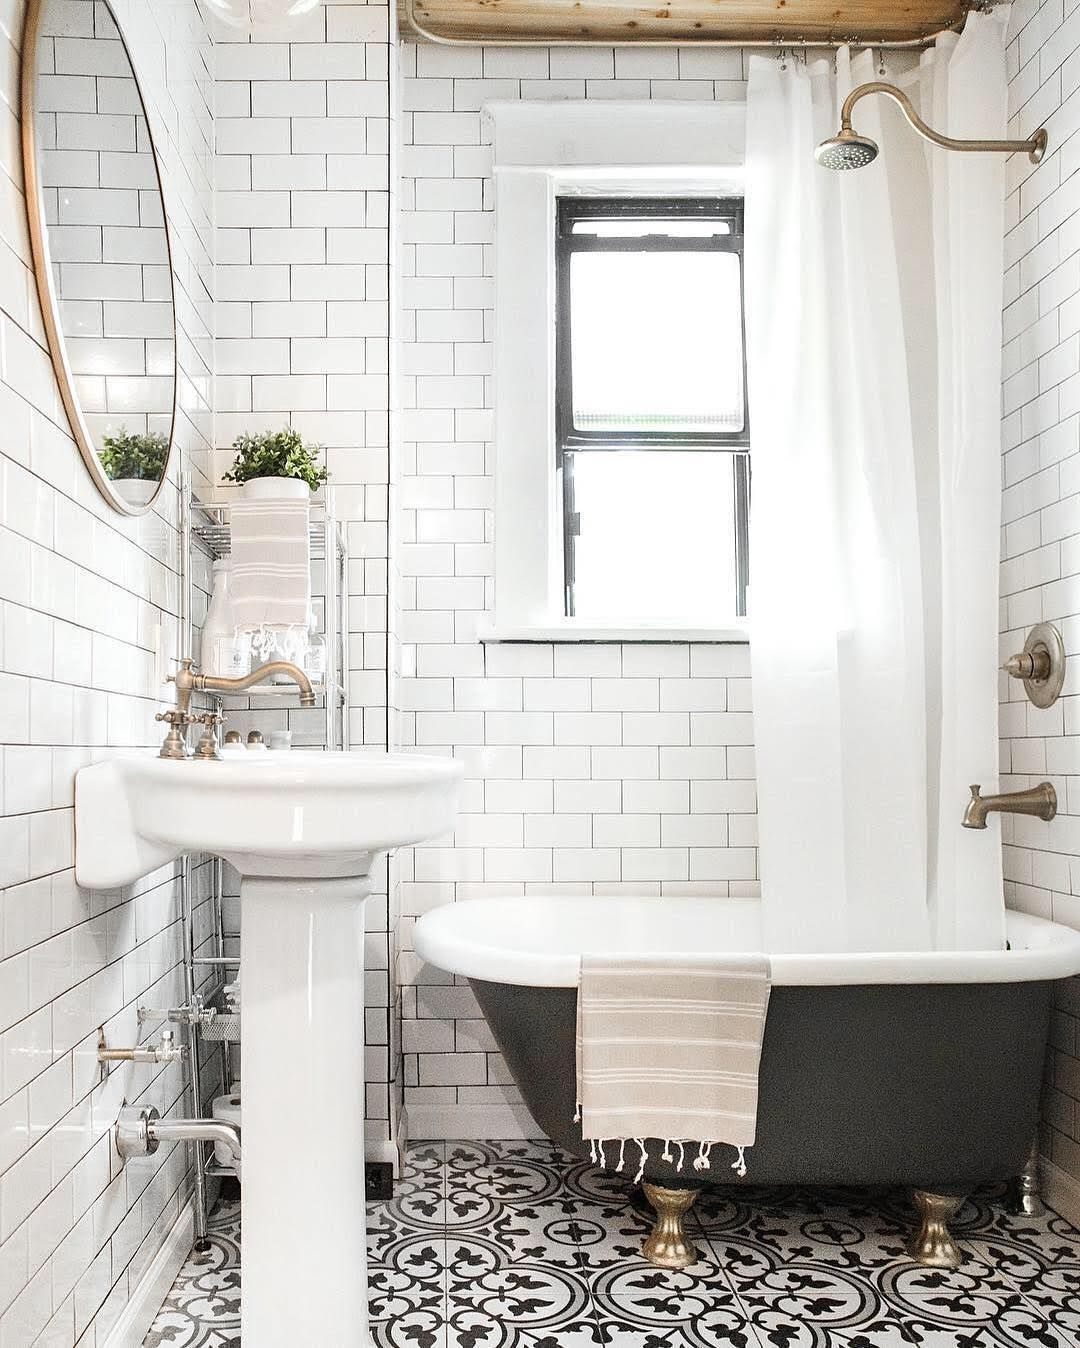 15 Bathroom Remodel Ideas : Pictures & Ideas for Bathroom Makeovers ...